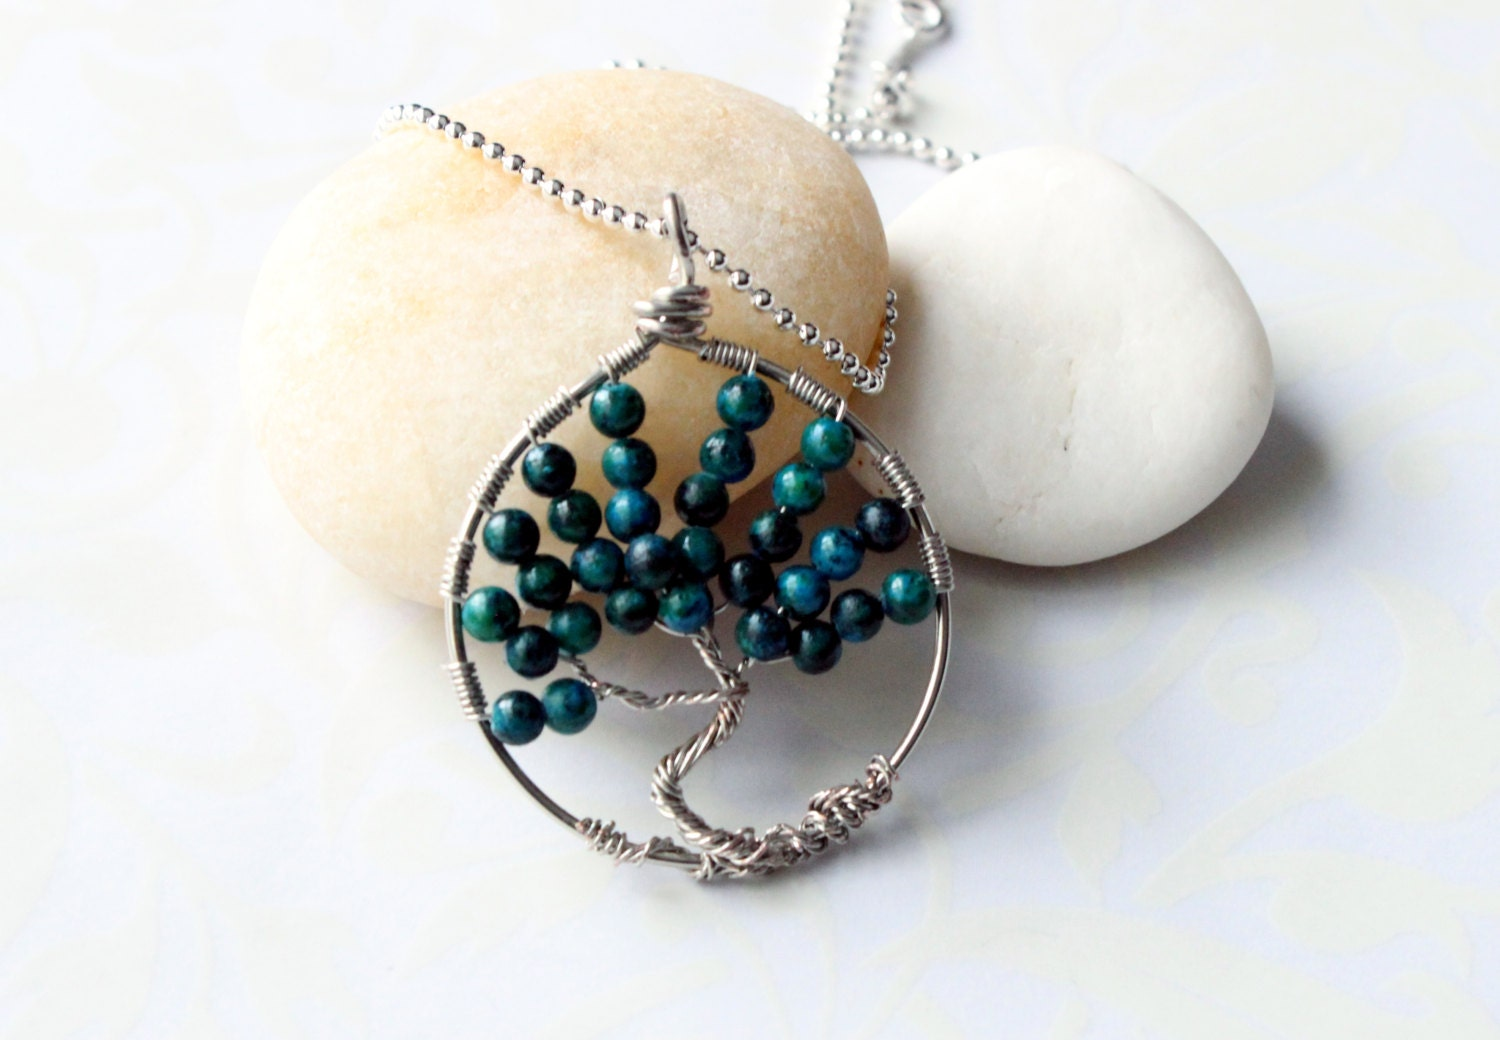 Unique Tree Of Life Handmade Wirewrapped With Turquoise Natural Gem Stone Pendant Necklace - RTStyles